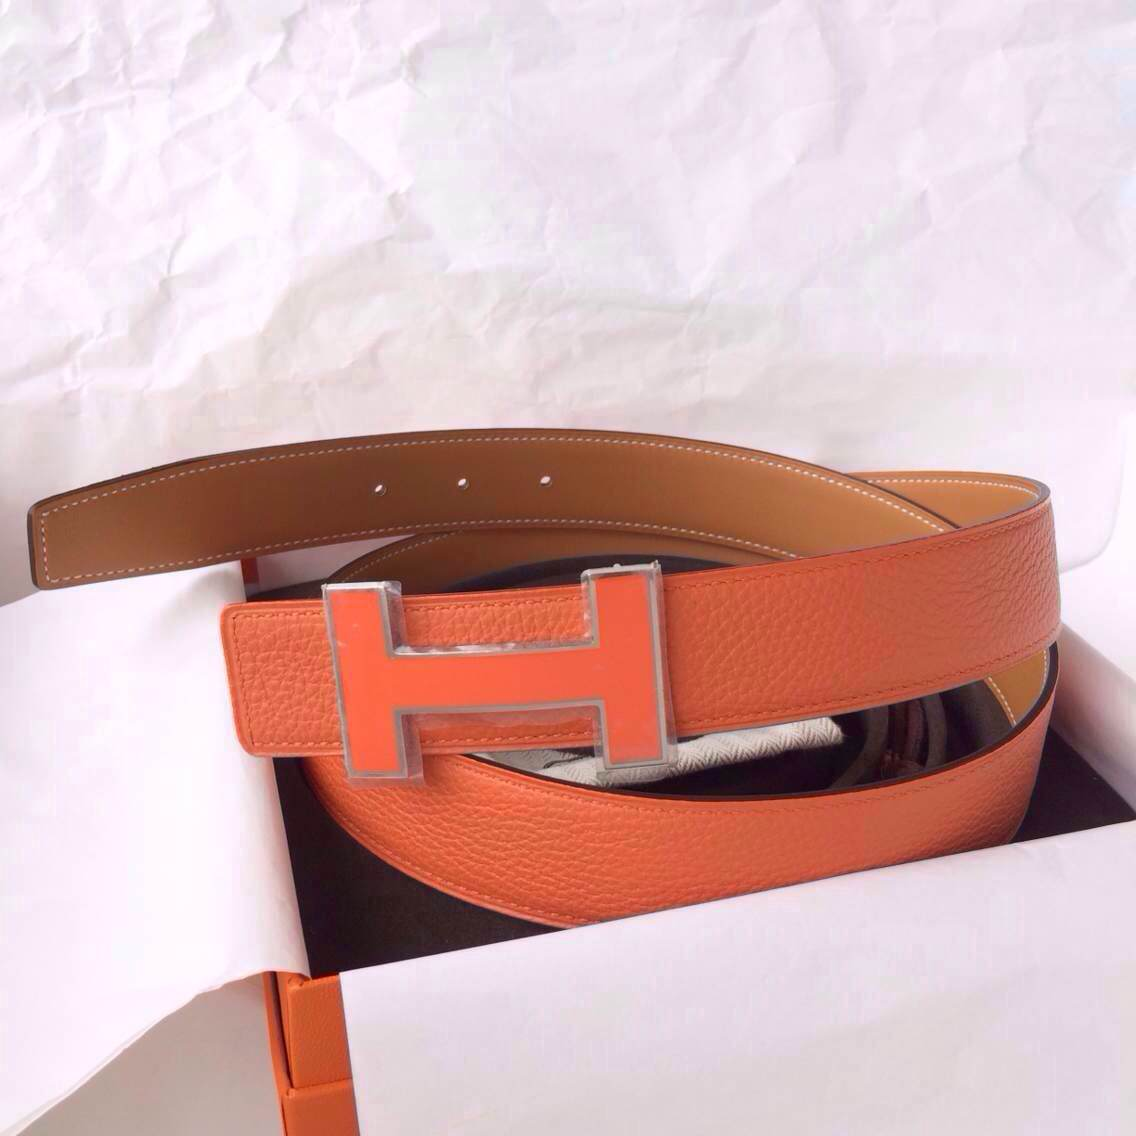 Wholesale Hermes Belt 93 Orange Togo Leather Light Coffee Box Leather 32mm Width